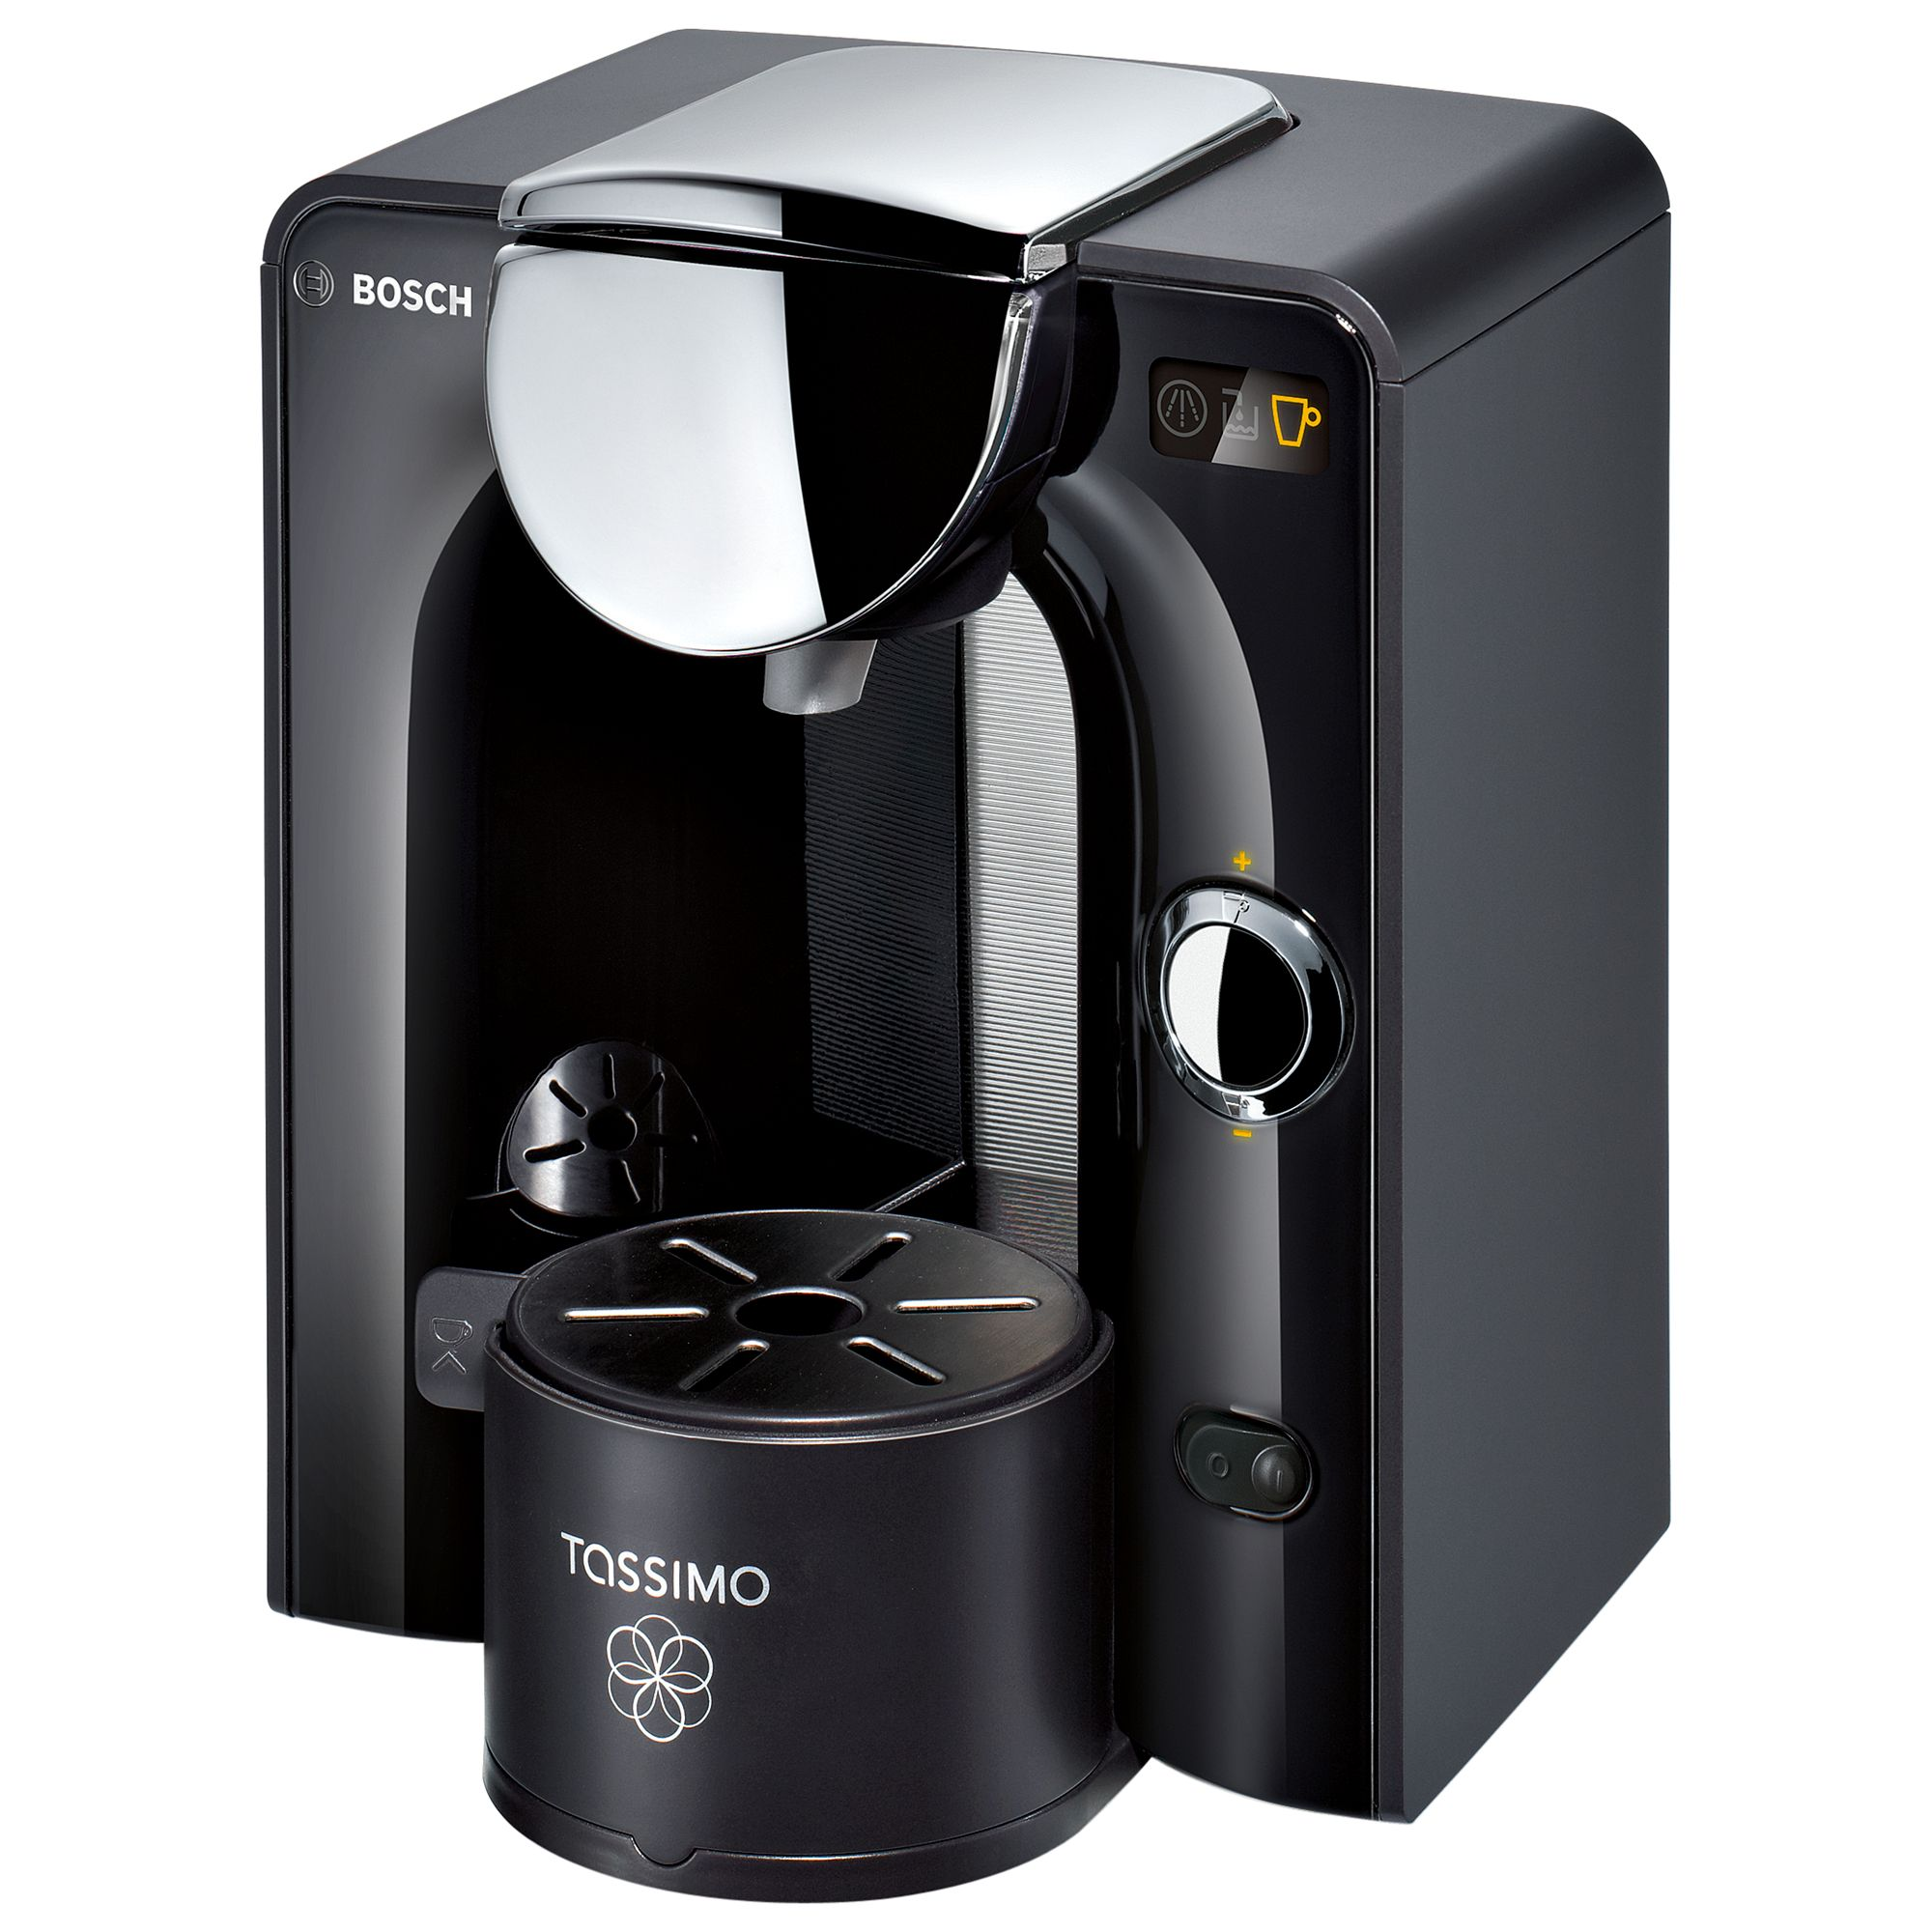 John Lewis Bosch Tassimo Coffee Maker : Buy Tassimo Charmy Coffee Machine by Bosch, Black John Lewis